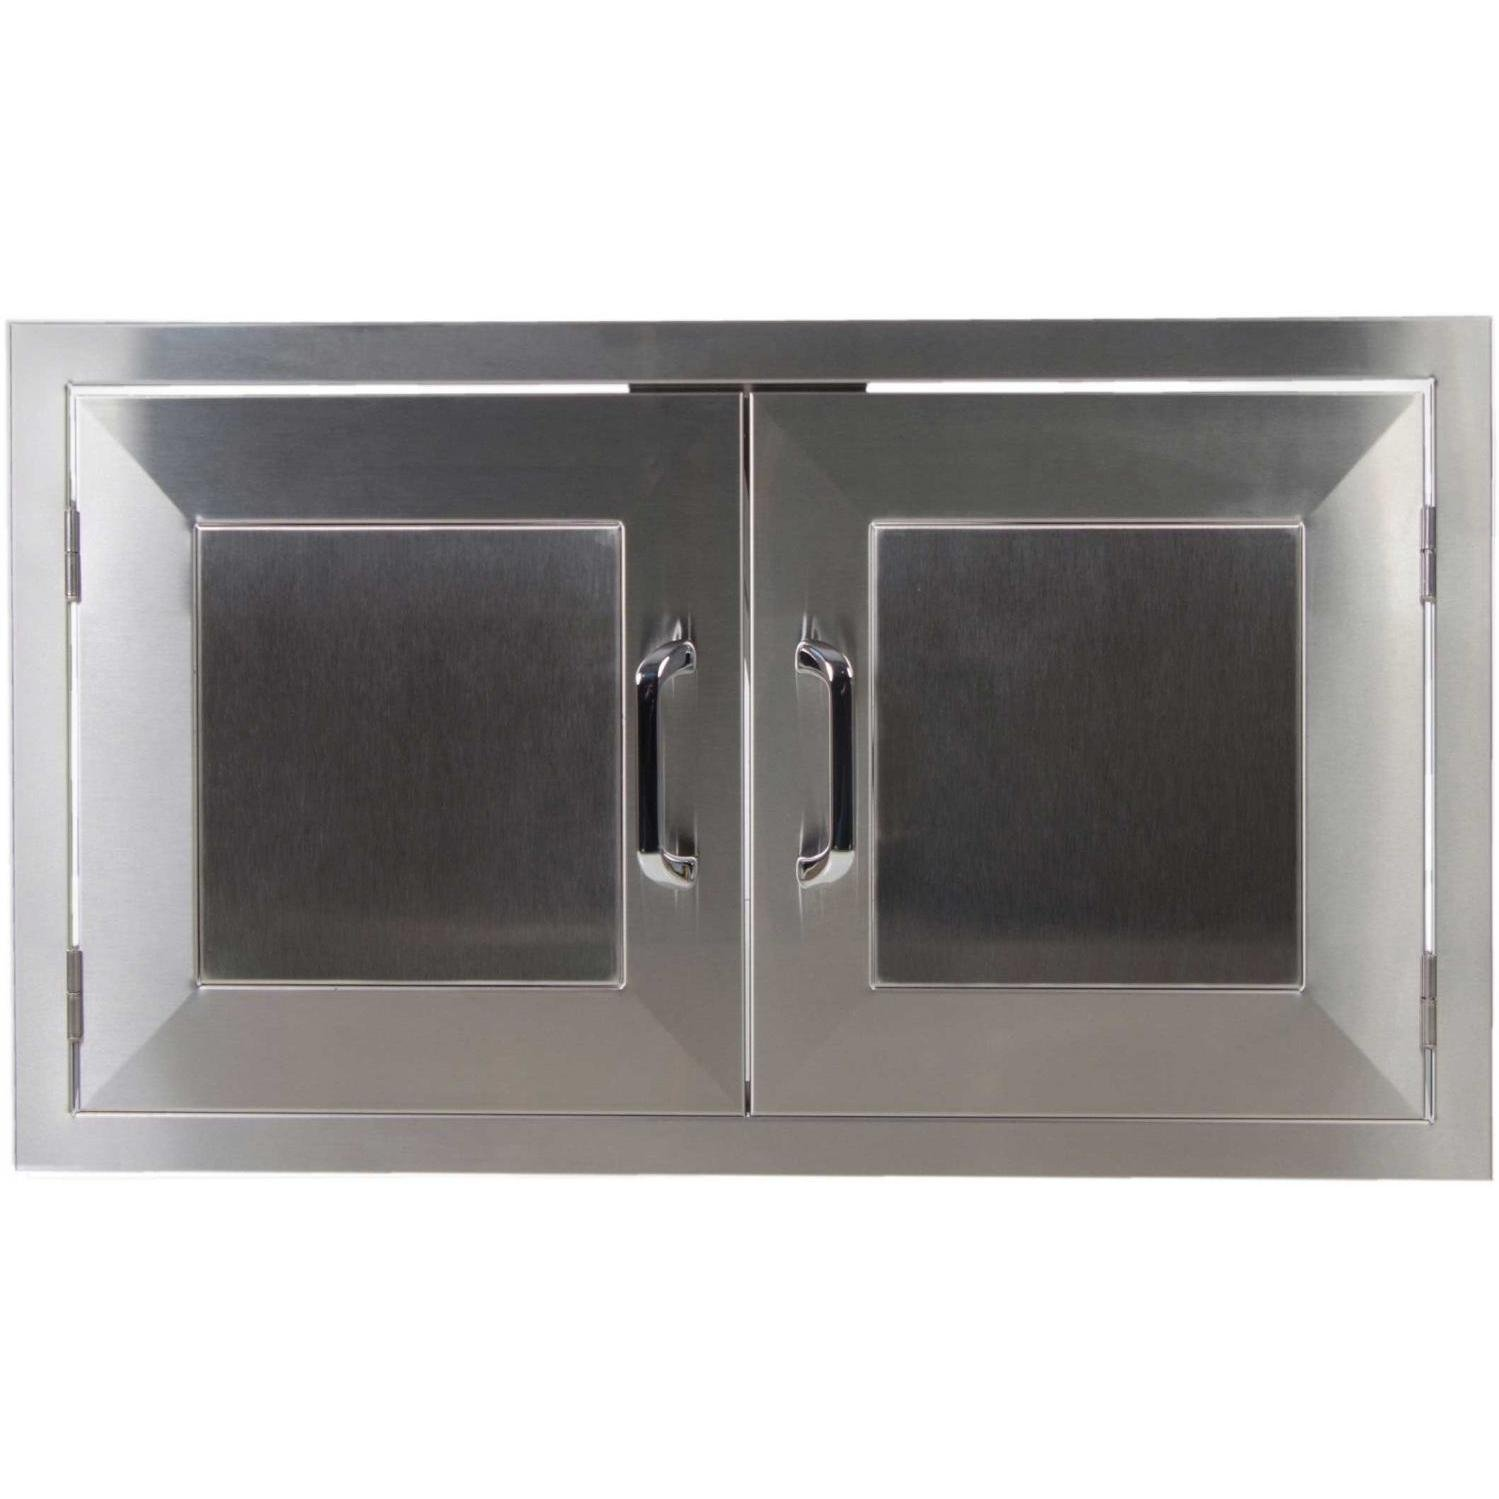 Bbqguys.com Kingston Panel Series 42-inch Stainless Steel Enclosed Cabinet Storage With Shelf